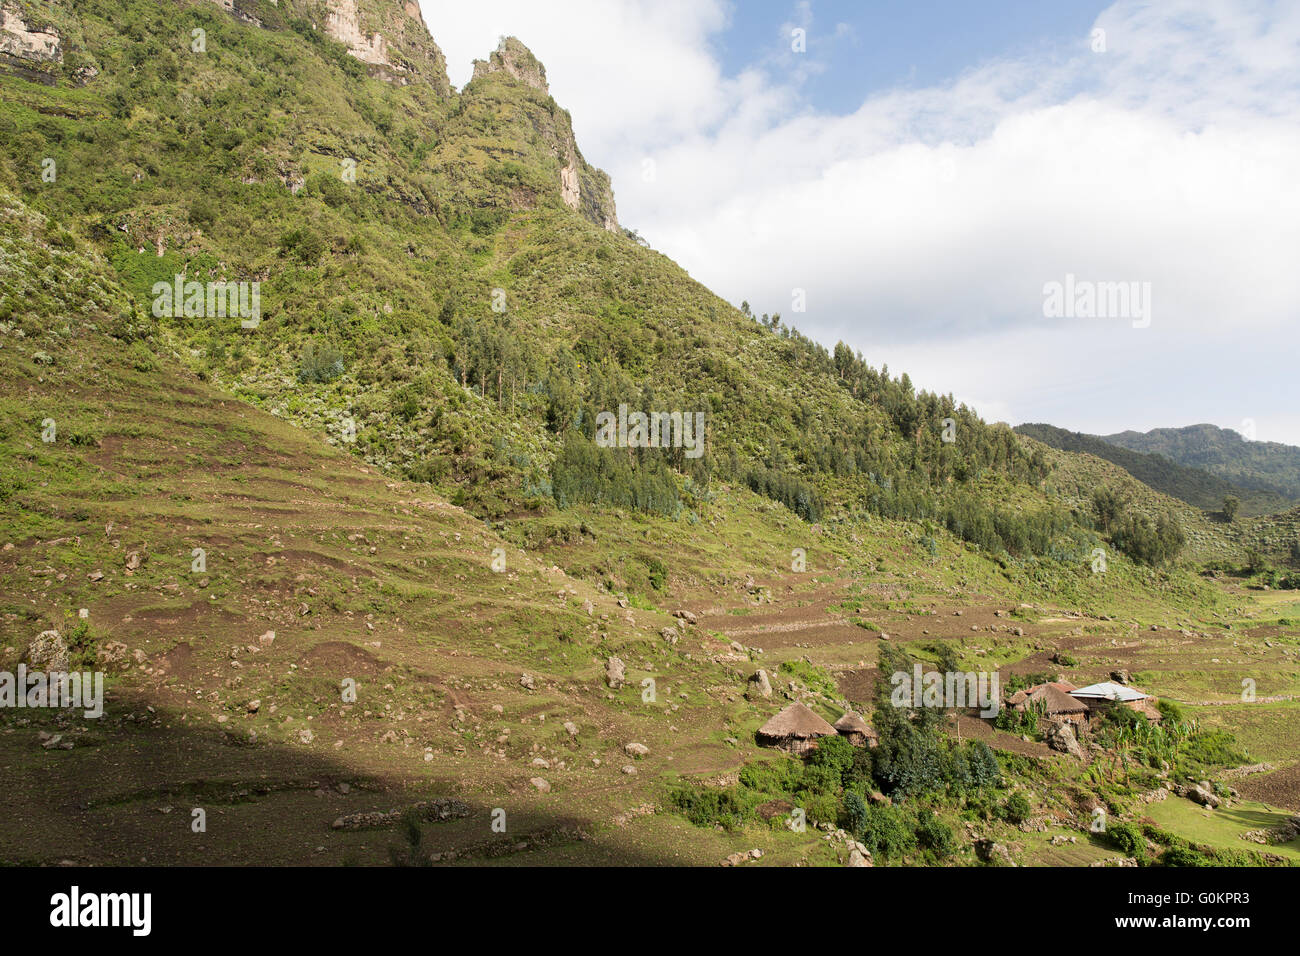 Mescha village, North Shewa,  Ethiopia, October 2013: steep slopes show signs of serious erosion. - Stock Image